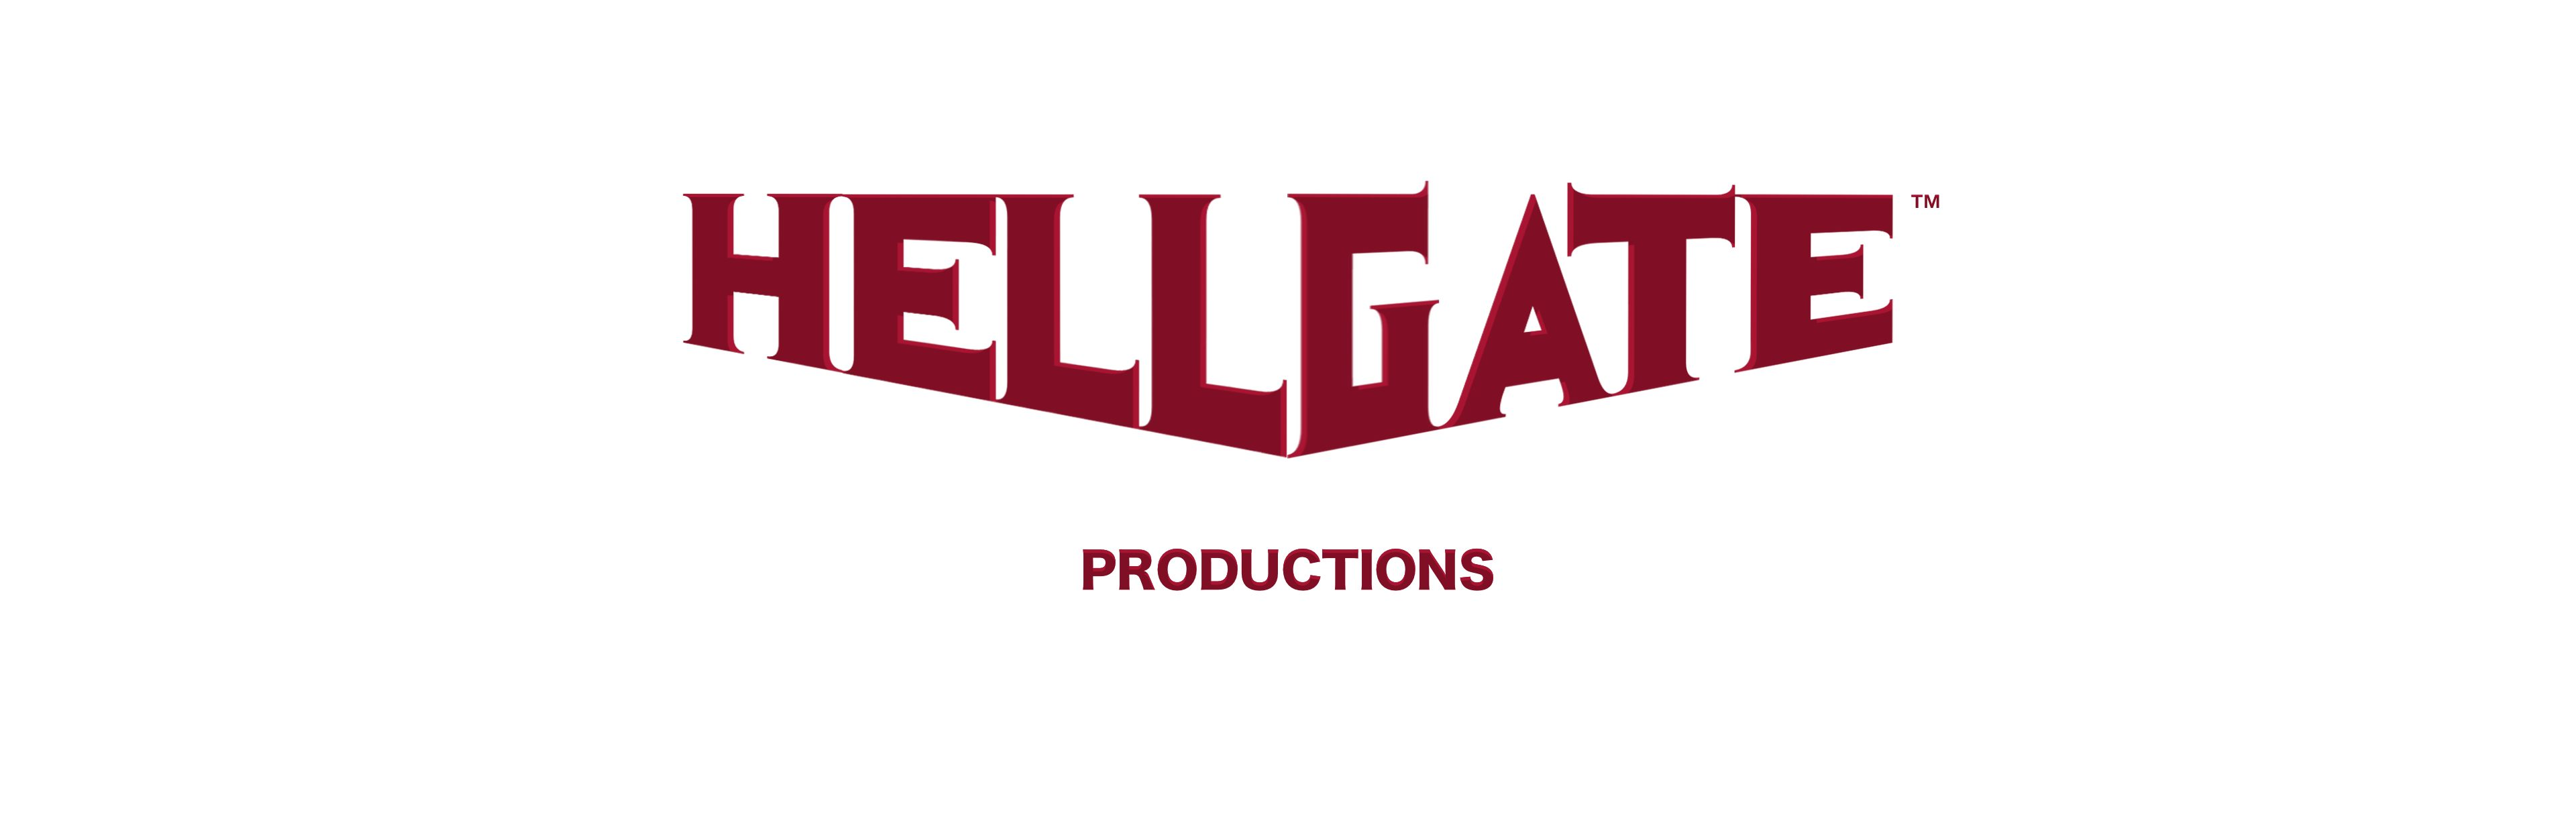 Hellgate Productions